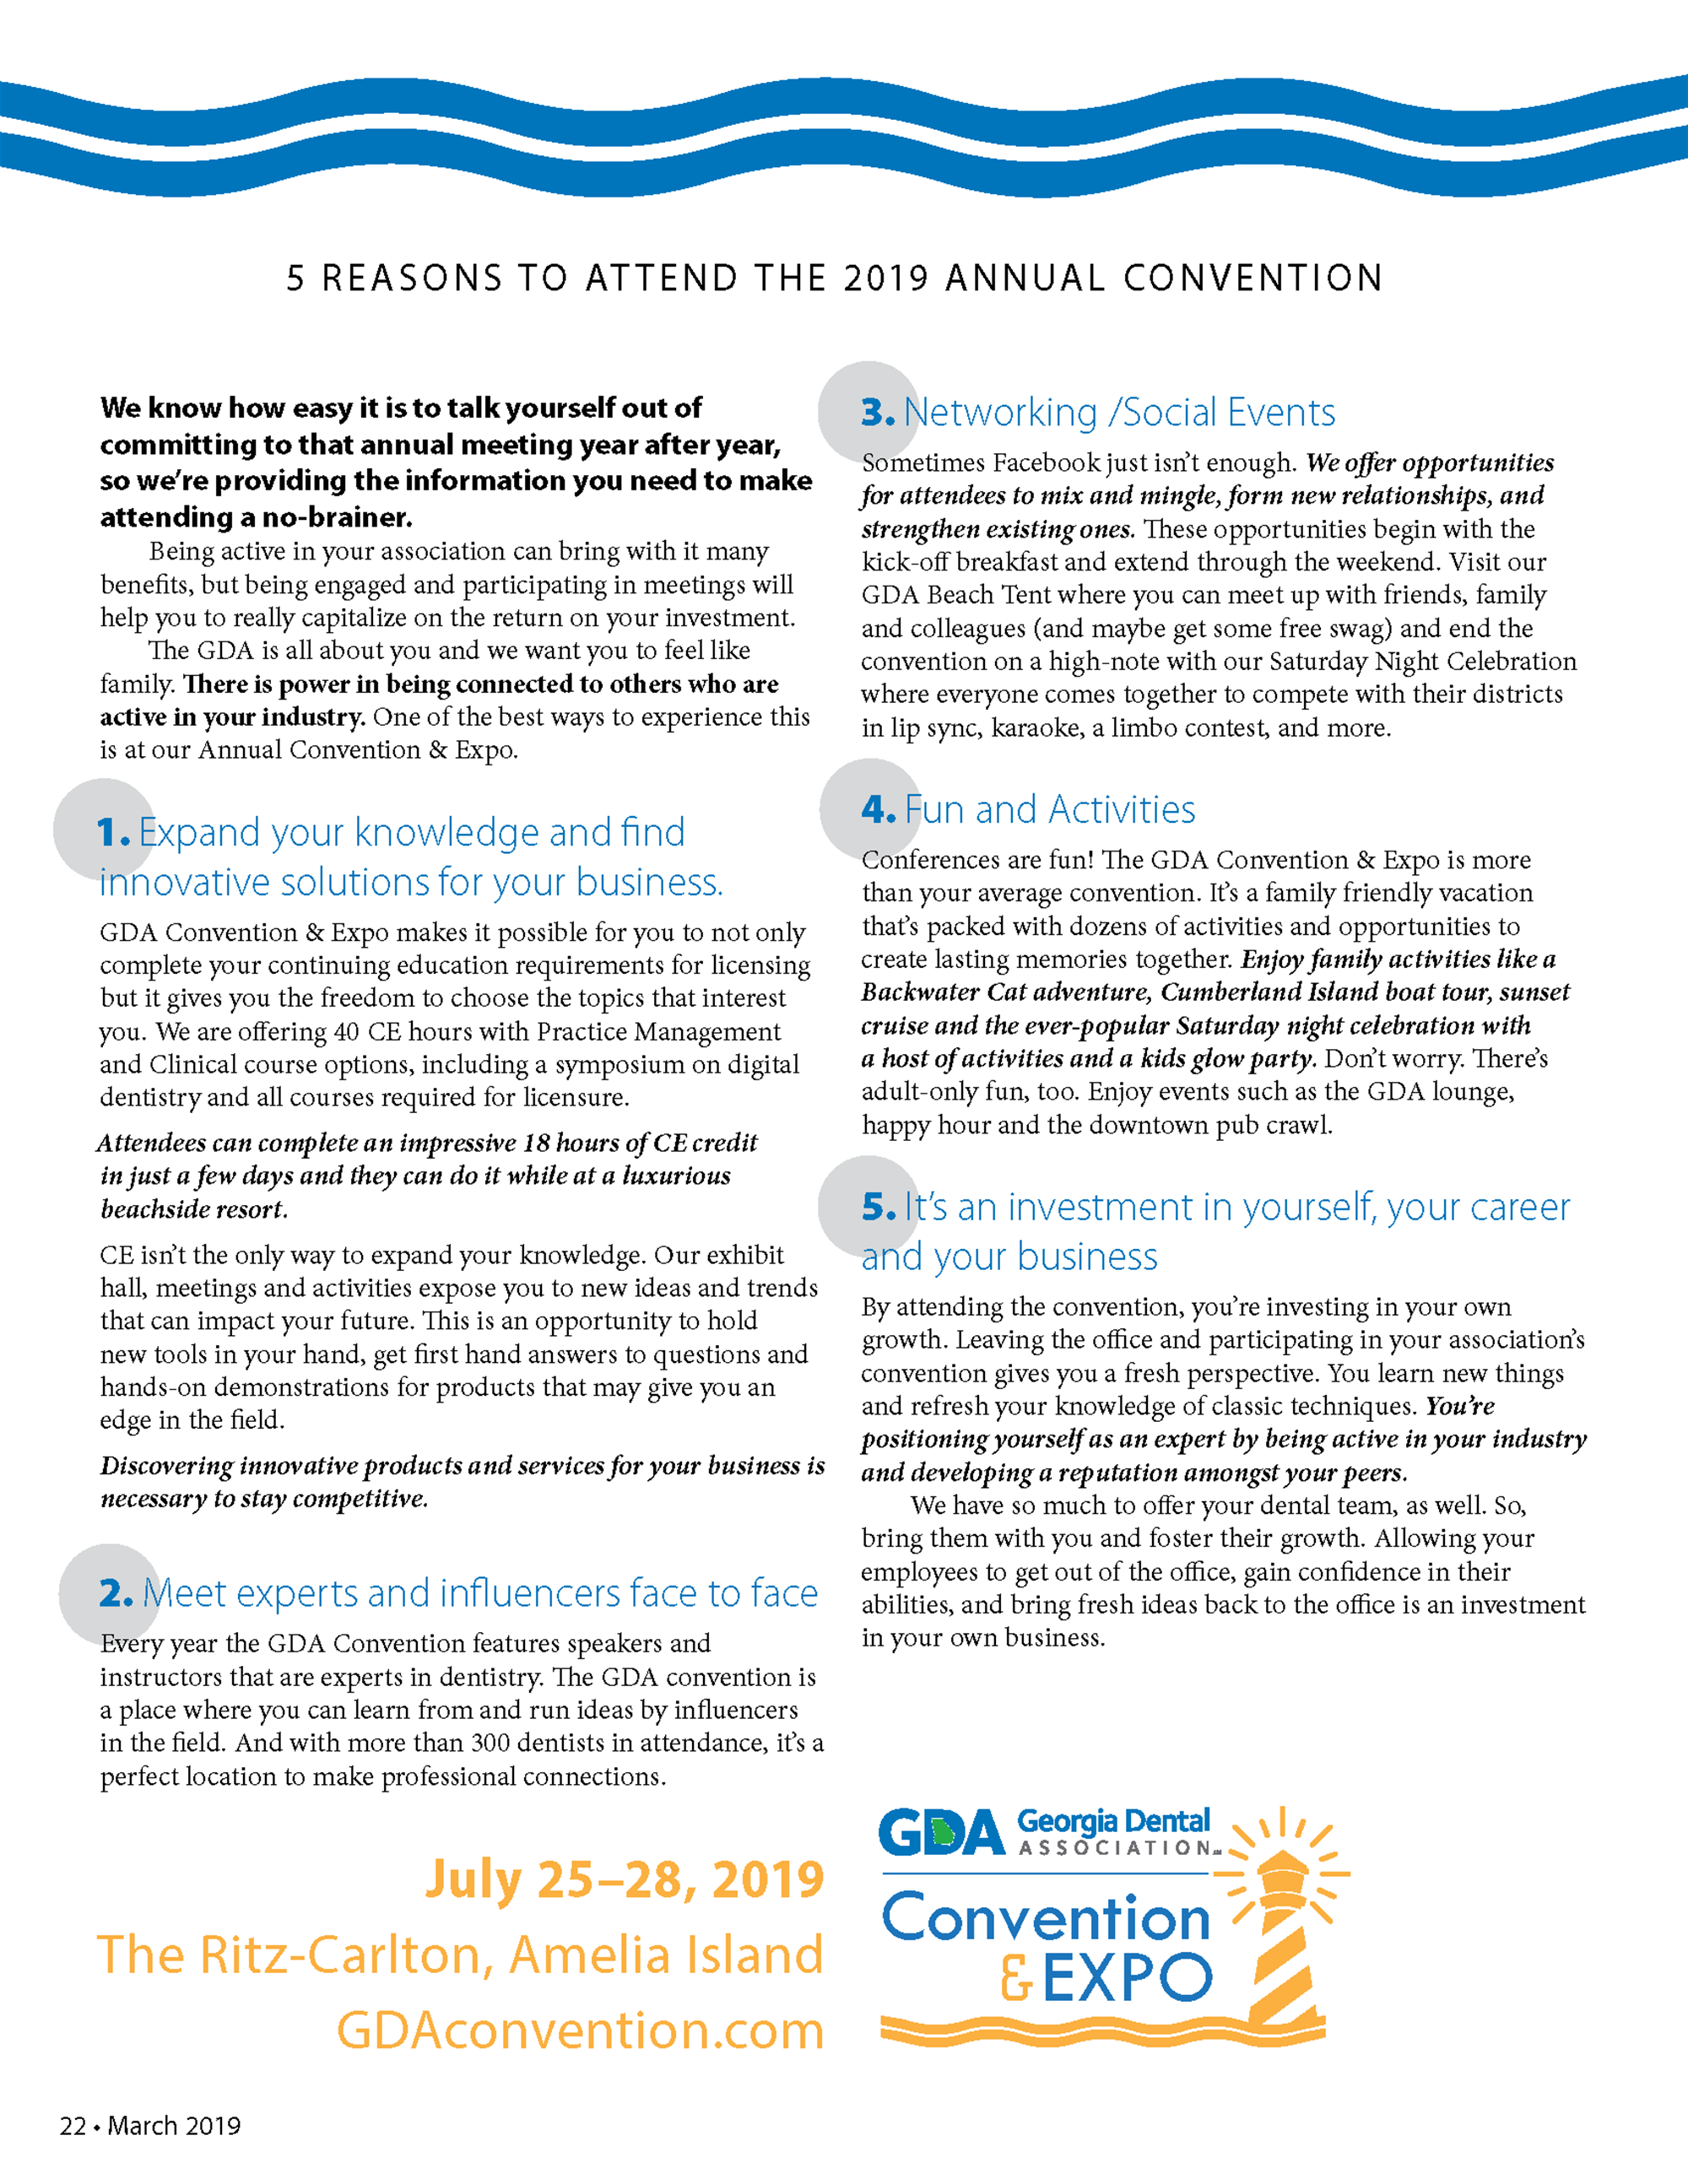 5 Reasons to Attend the 2019 Annual Convention